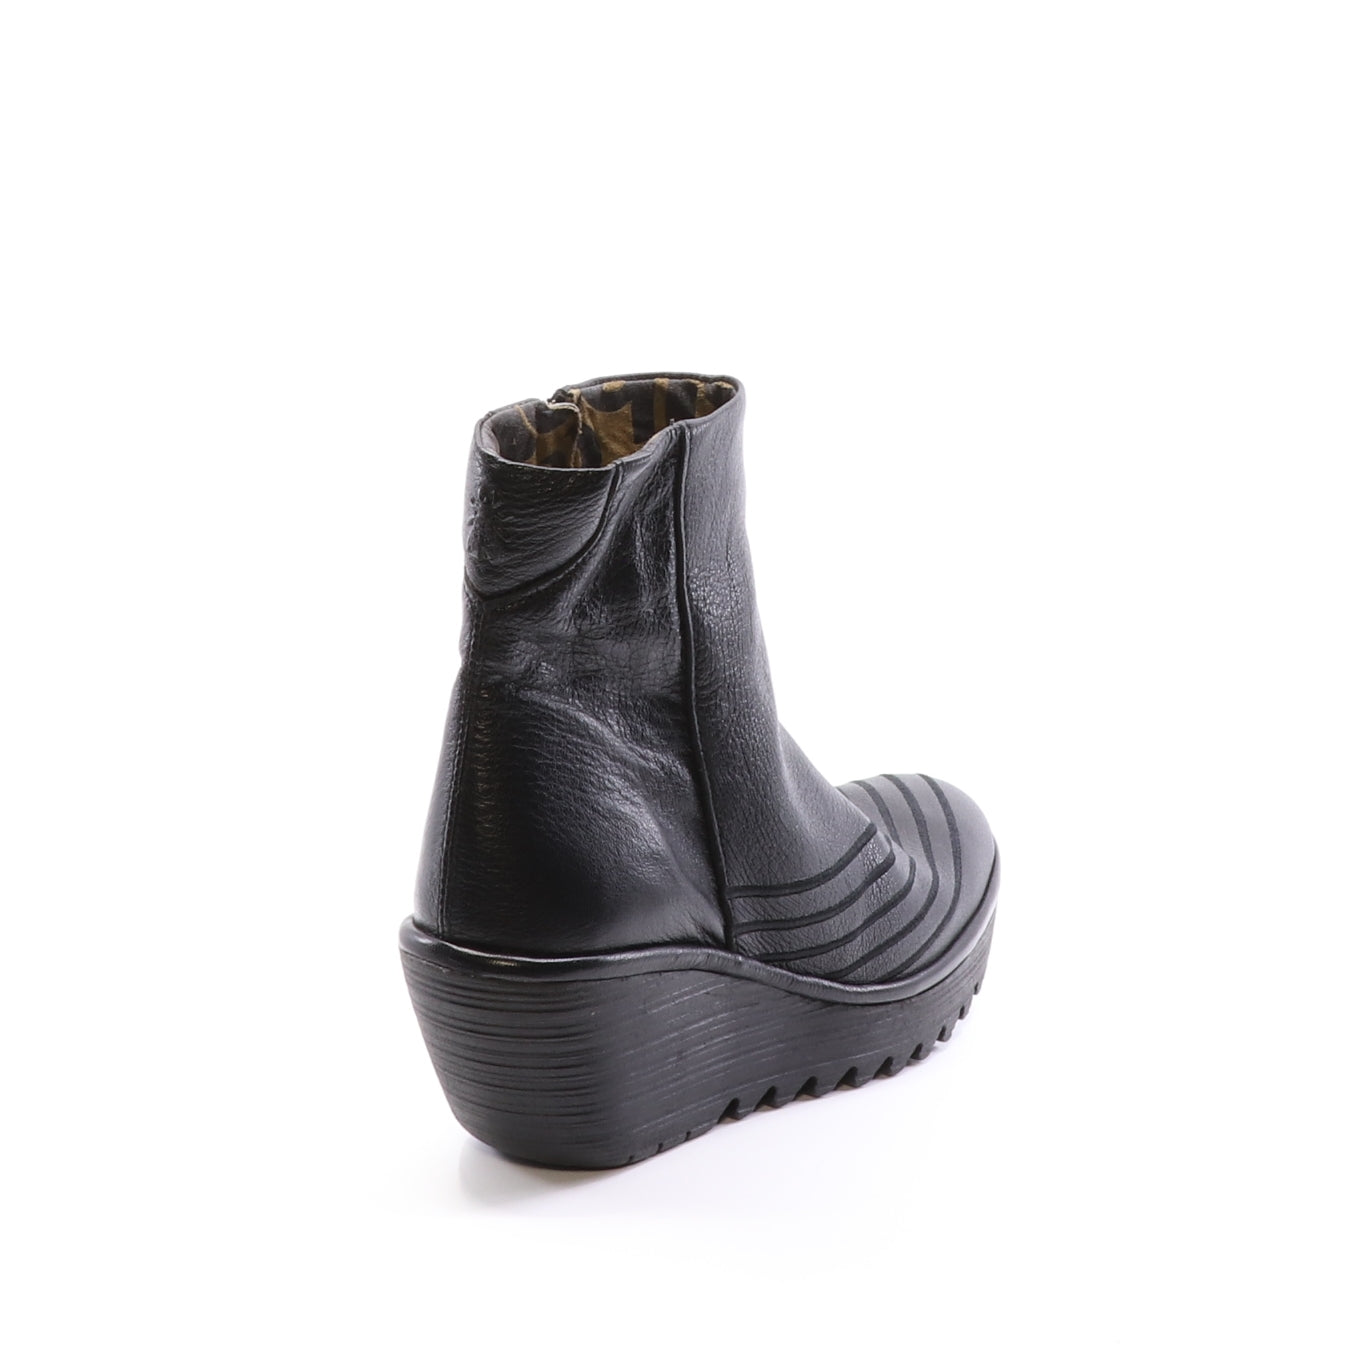 Fly London Yeni black boot available at Shoe Muse